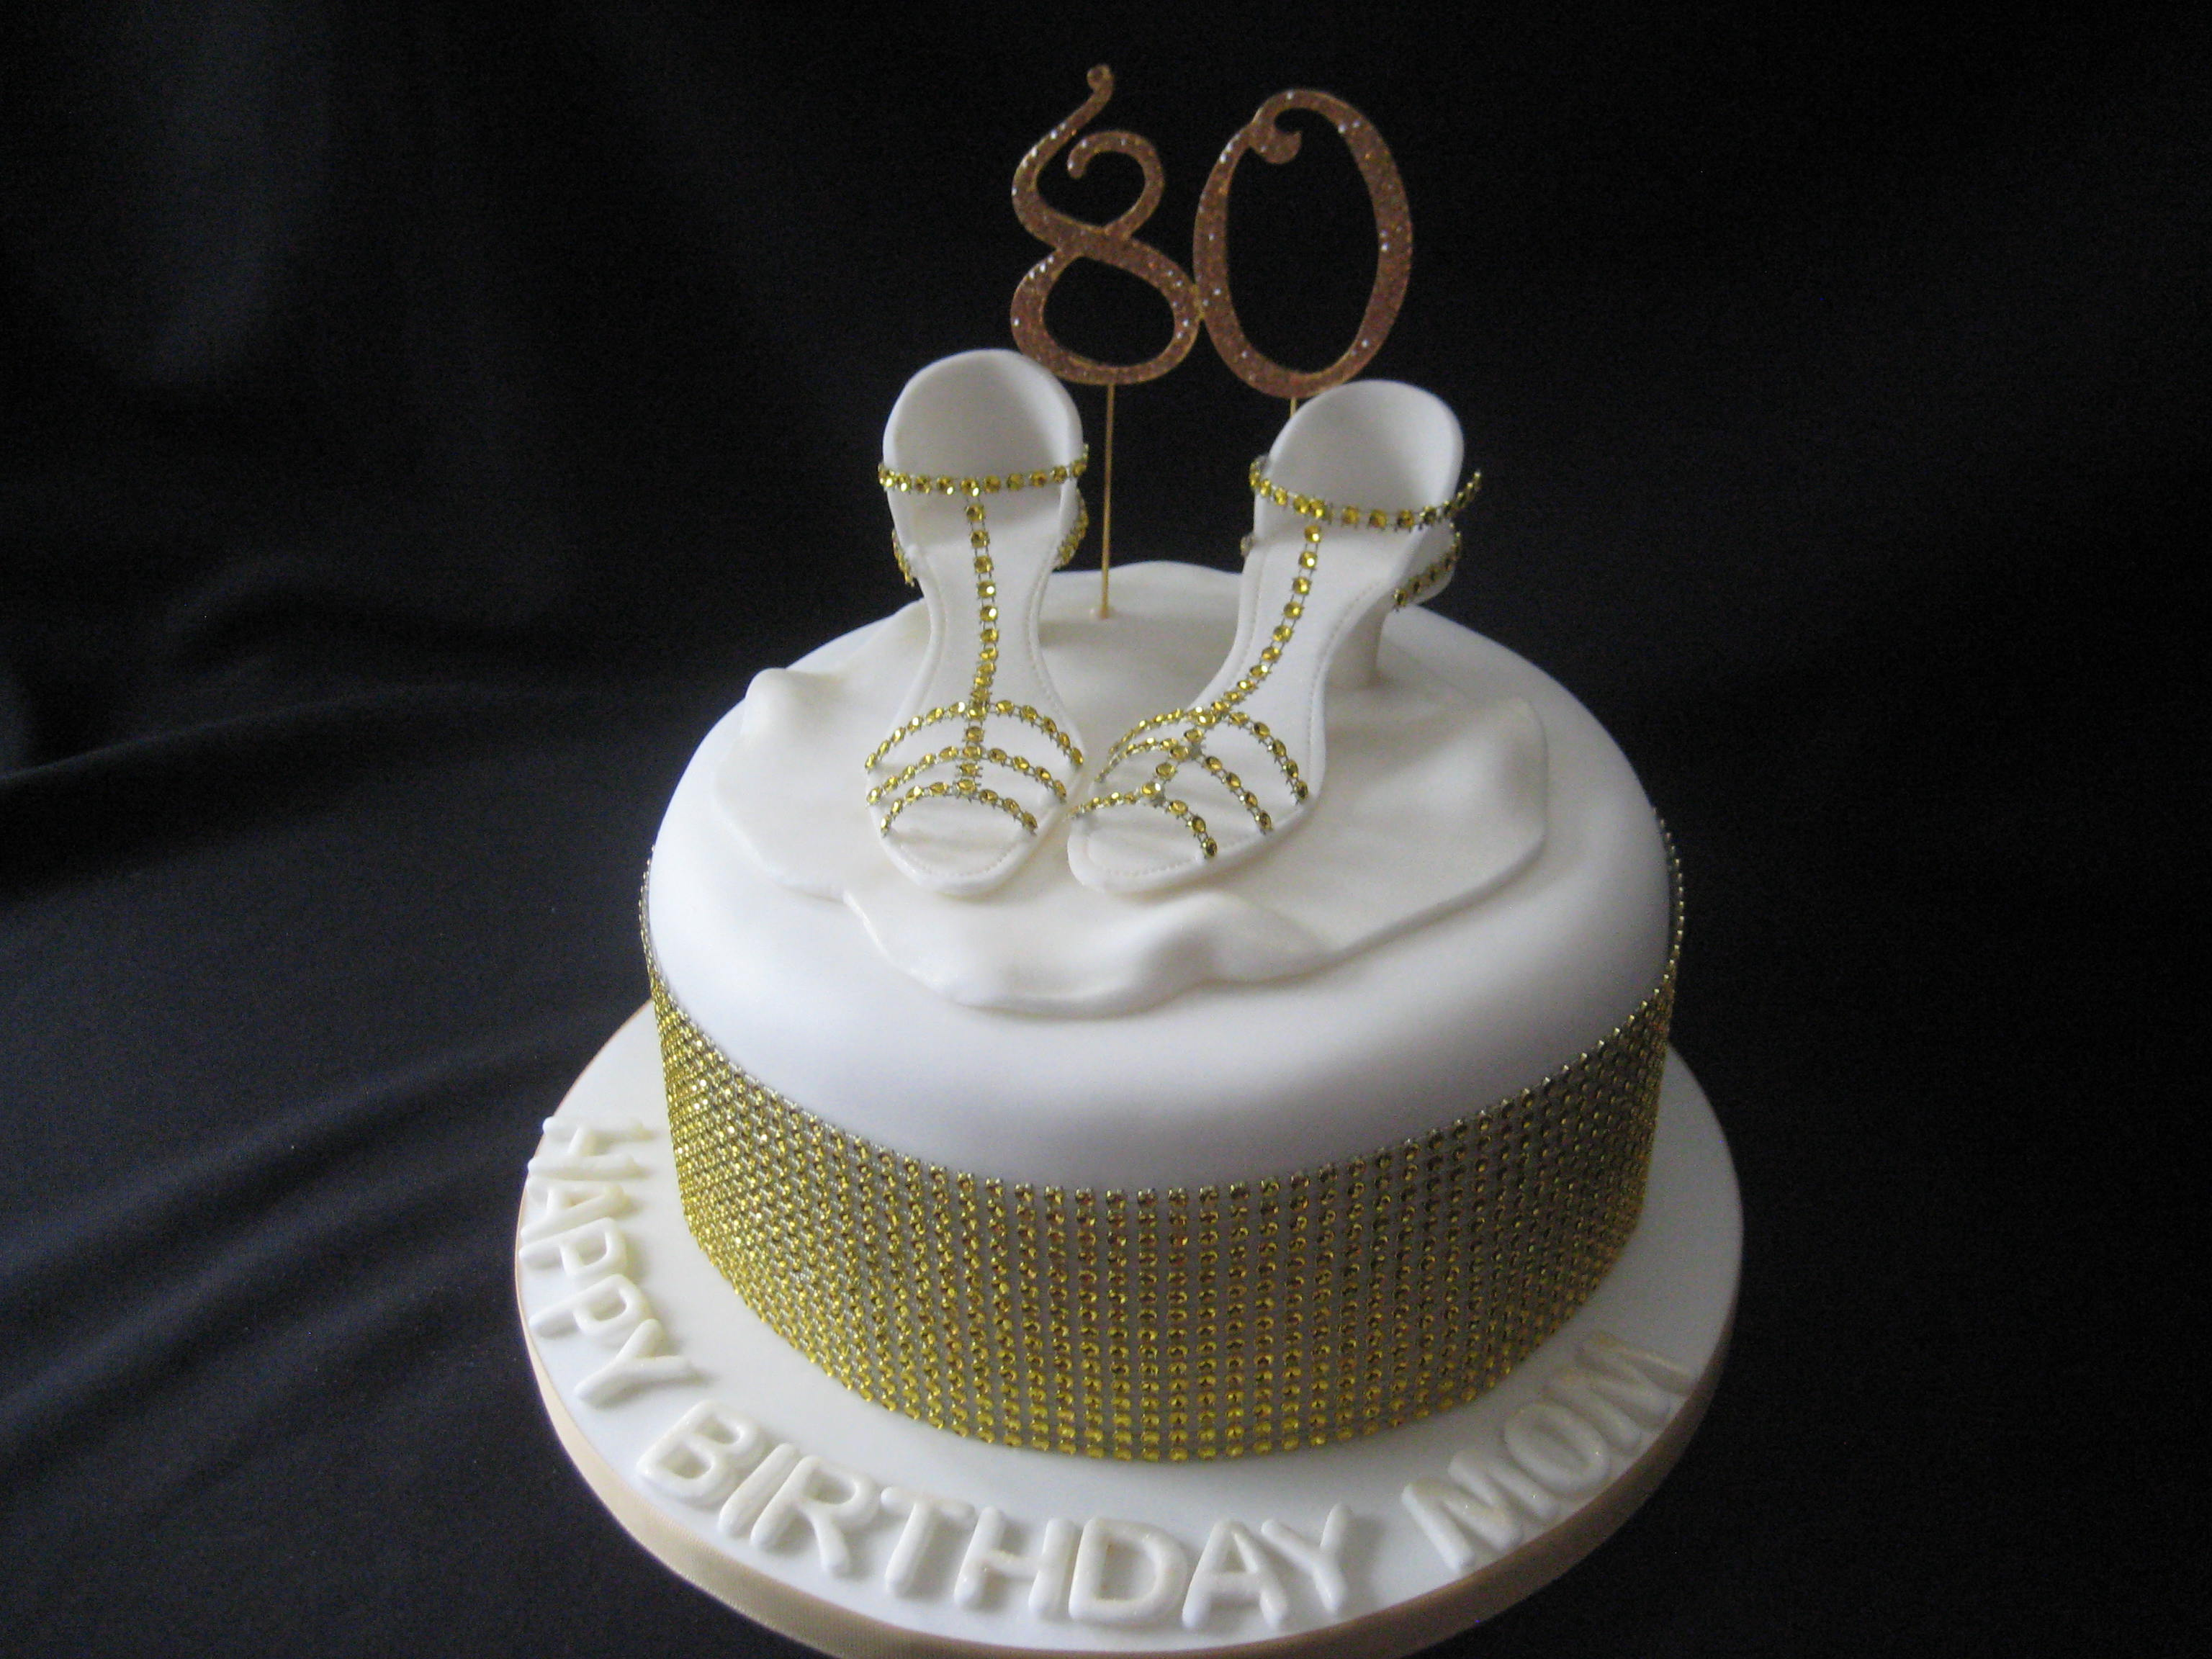 Swell Dancing Shoes 80Th Birthday Cake Wendy Cakes Personalised Birthday Cards Cominlily Jamesorg